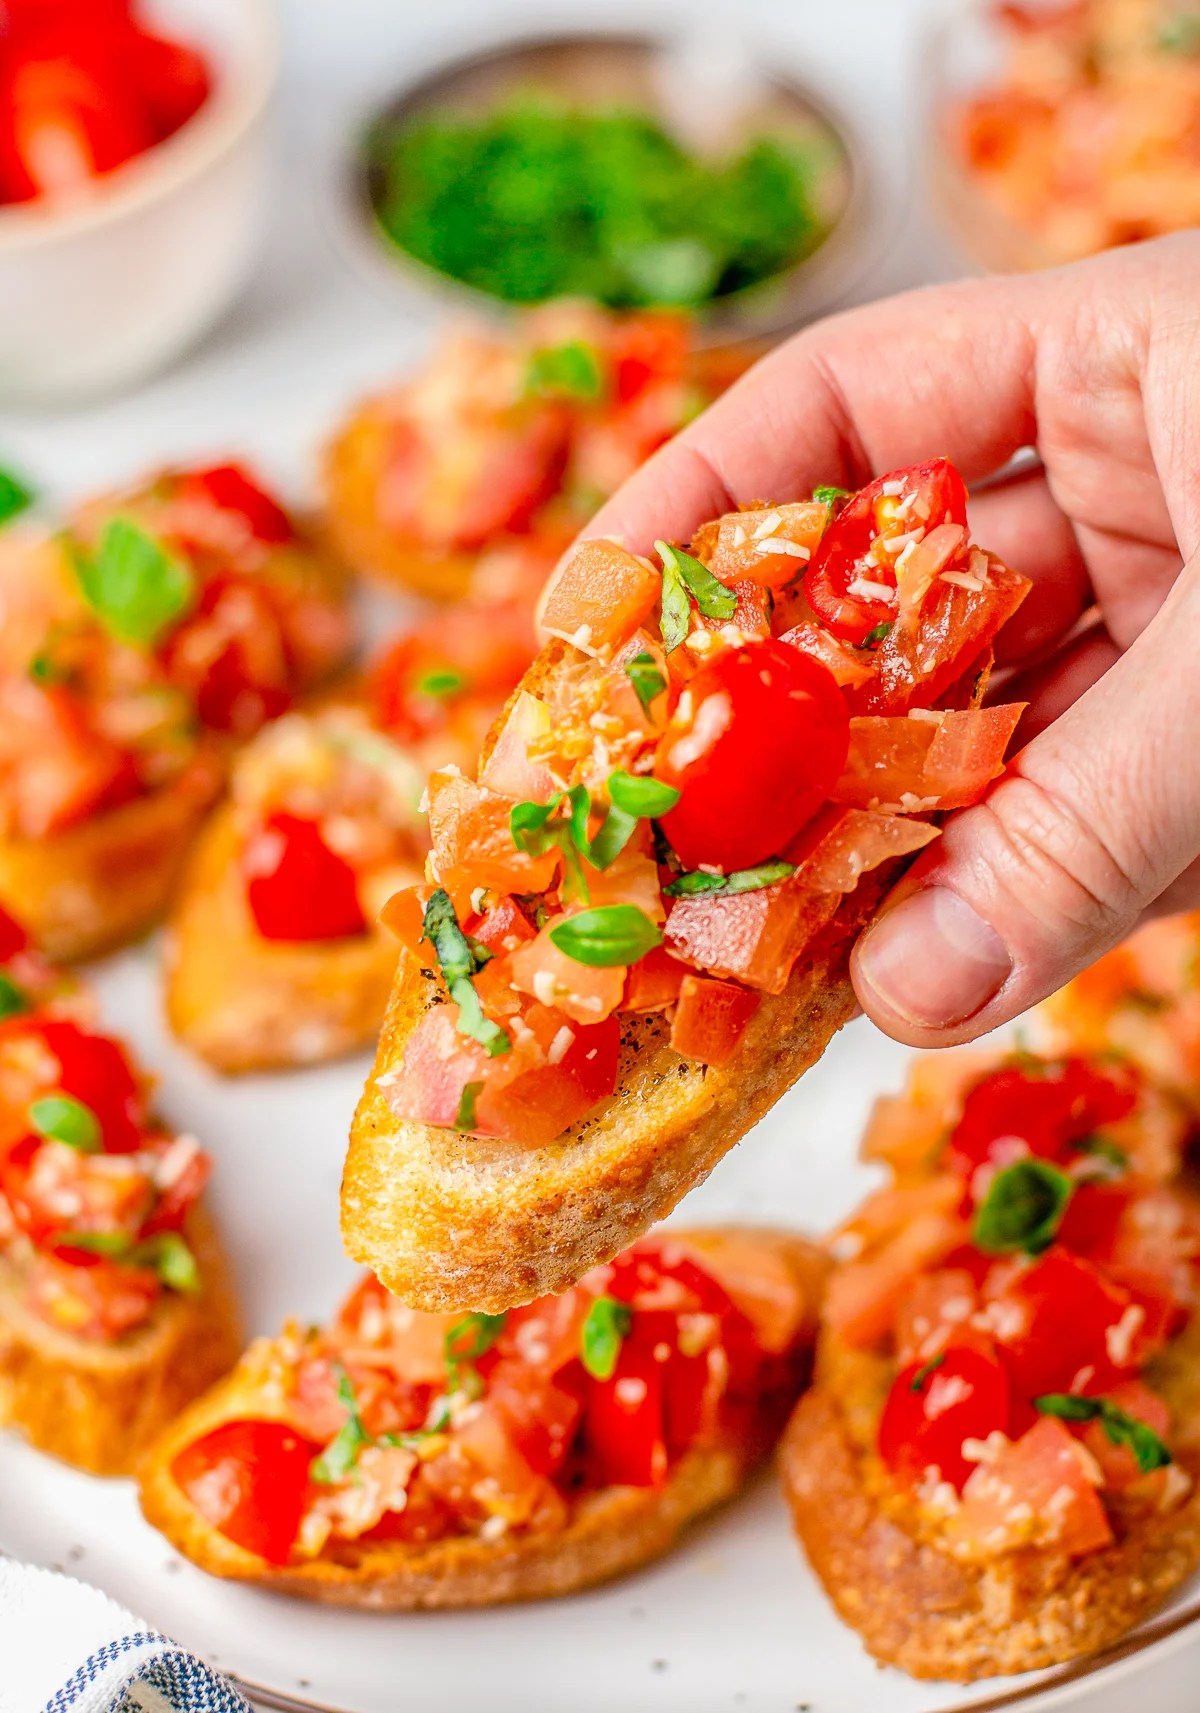 Hand holding up one Crostini with Bruschetta on top